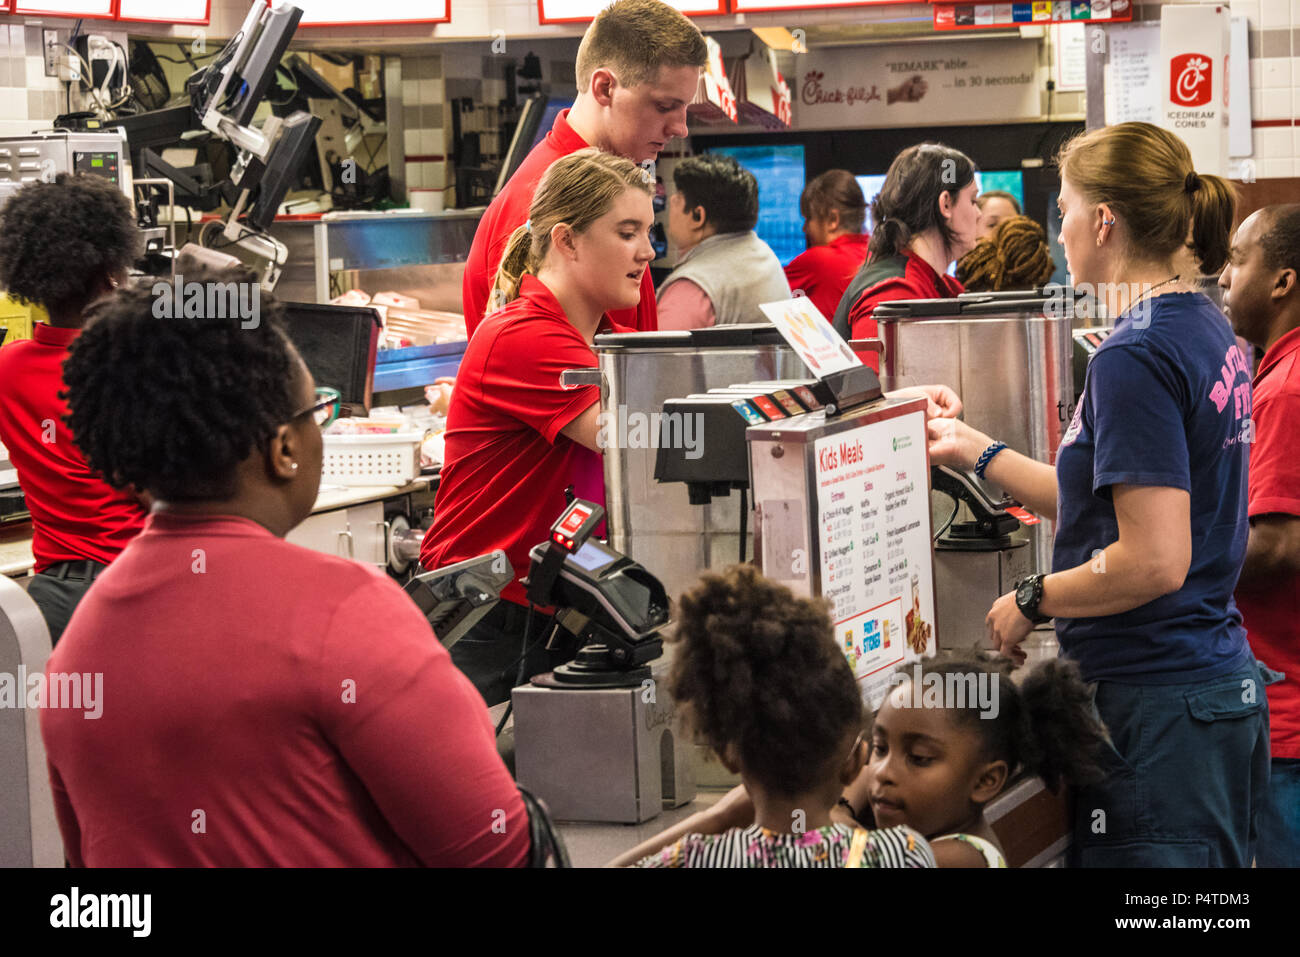 Customers ordering food at a busy Chick-fil-A restaurant in Olive Branch, Mississippi. (USA) - Stock Image